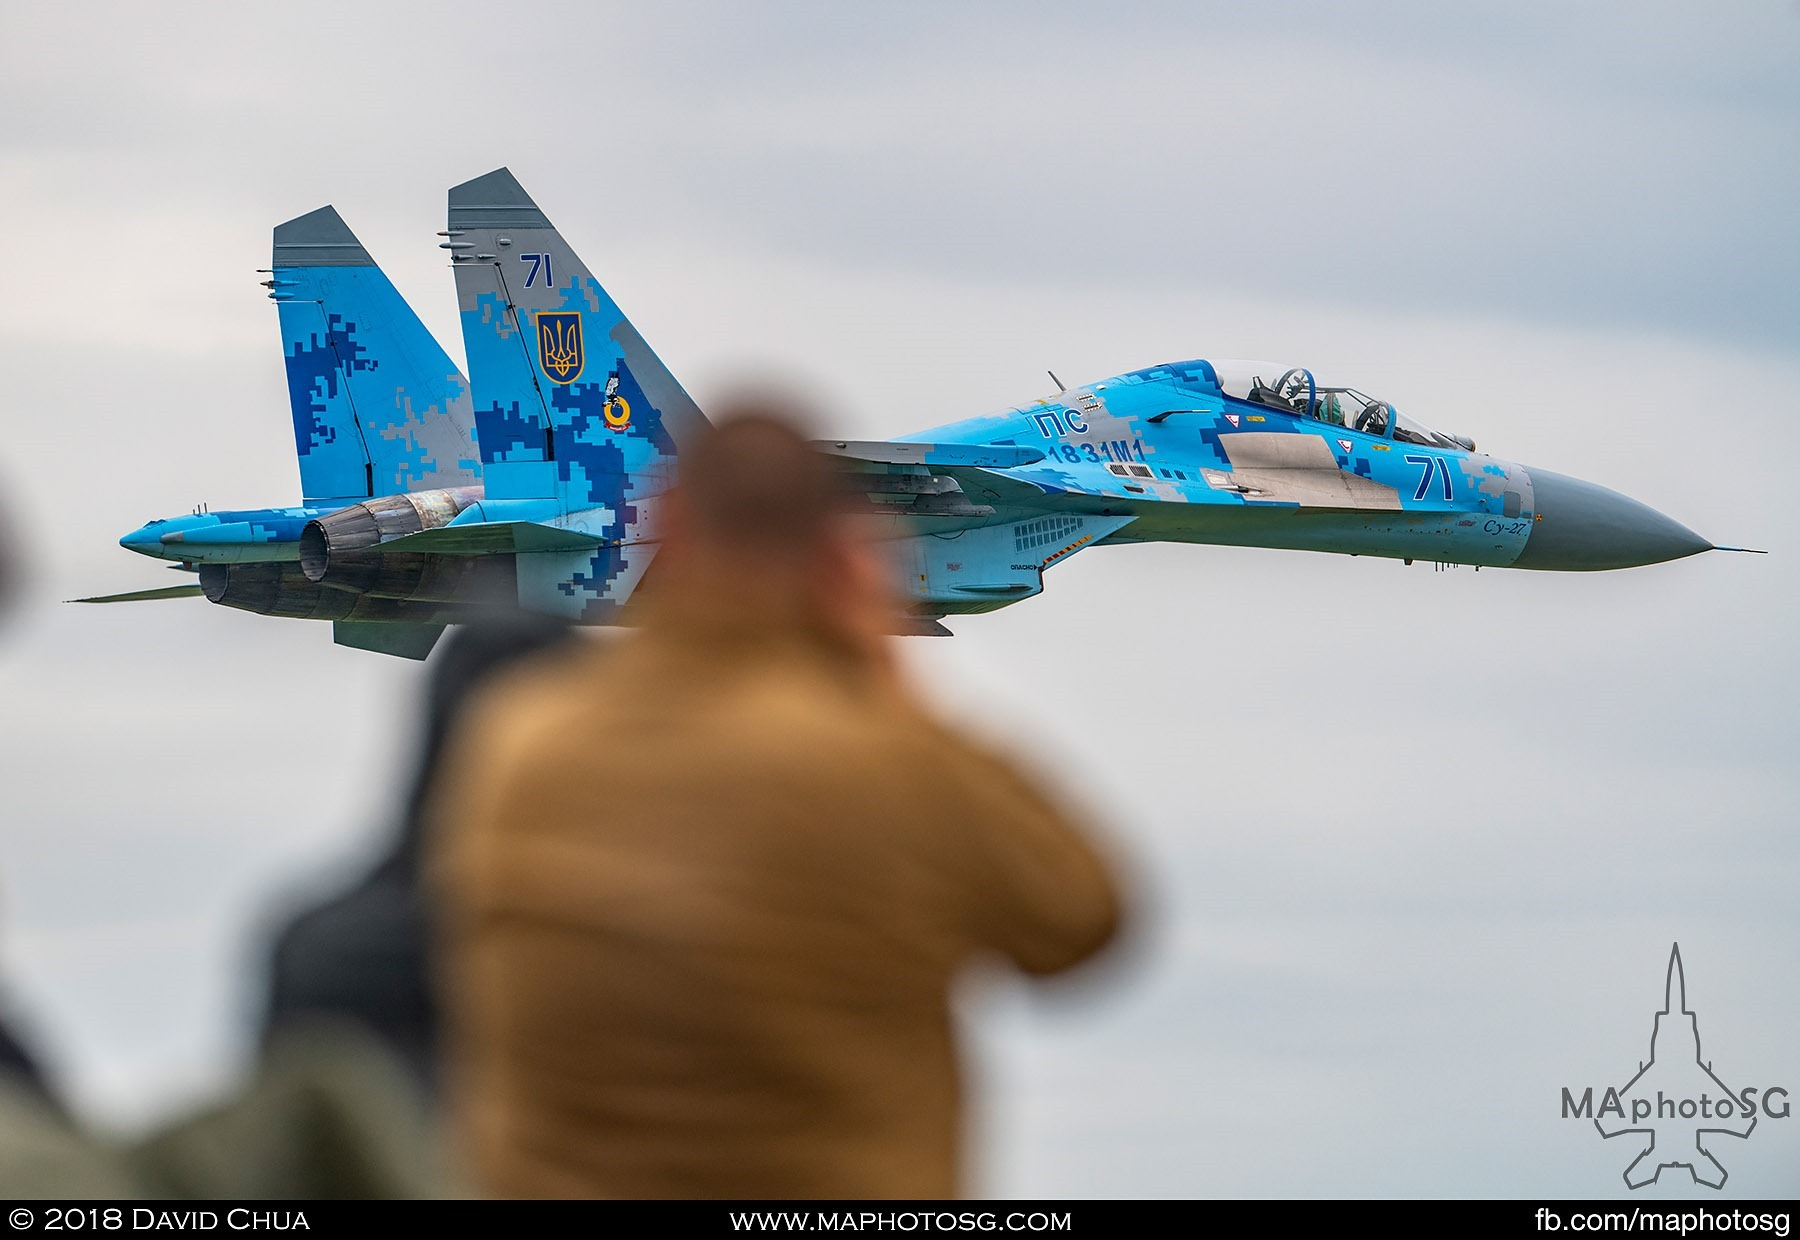 44. Photographers tries to capture the Ukrainian Air Force Su-27 Flaker as it performed a low pass